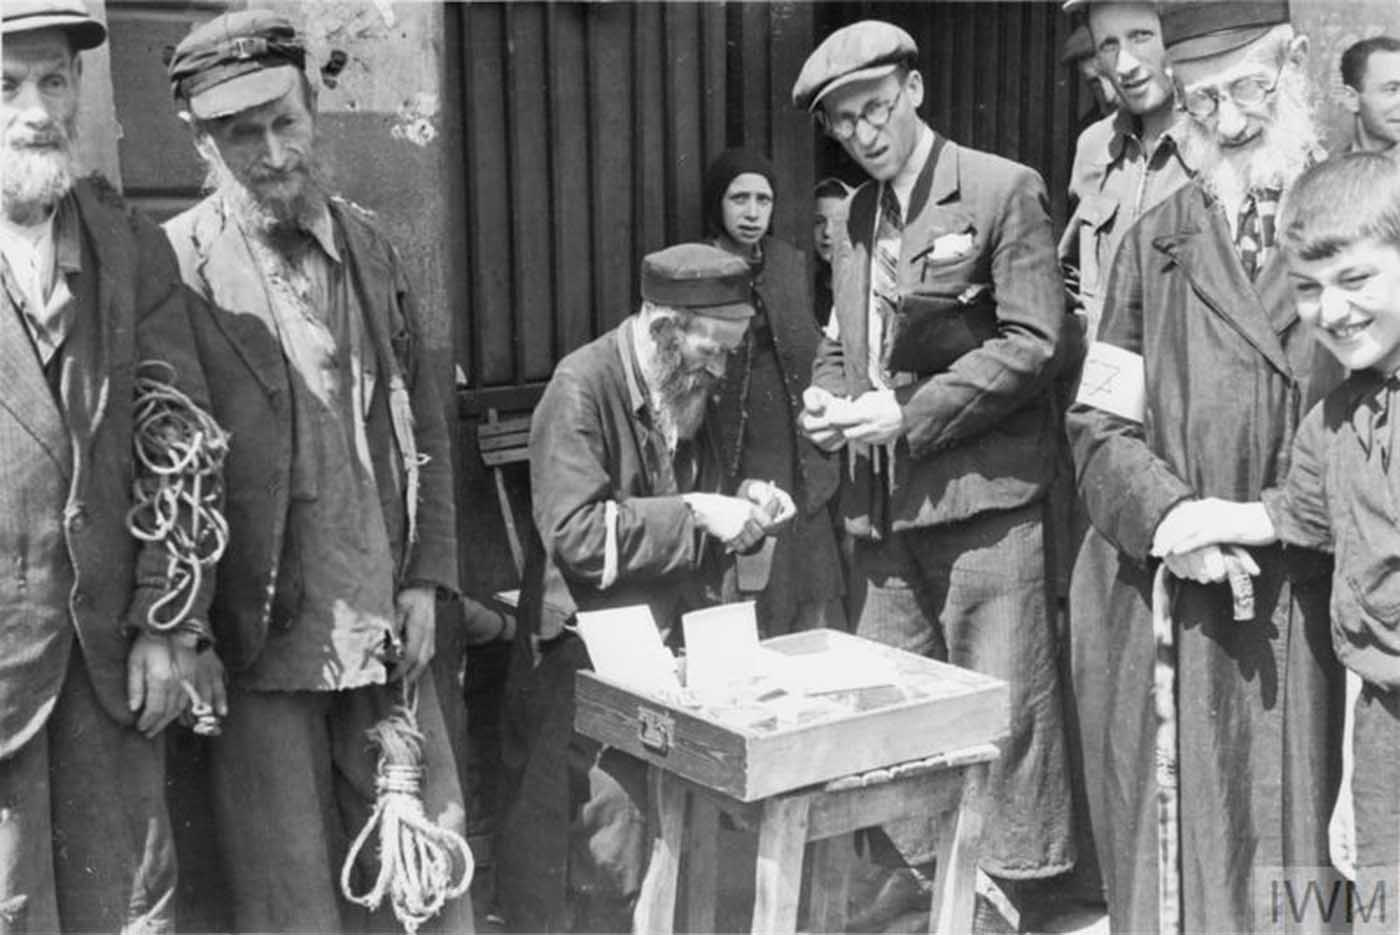 An armband seller making a transaction in the street of the ghetto. Note two elderly Jewish men on the left, probably selling pieces of rope.